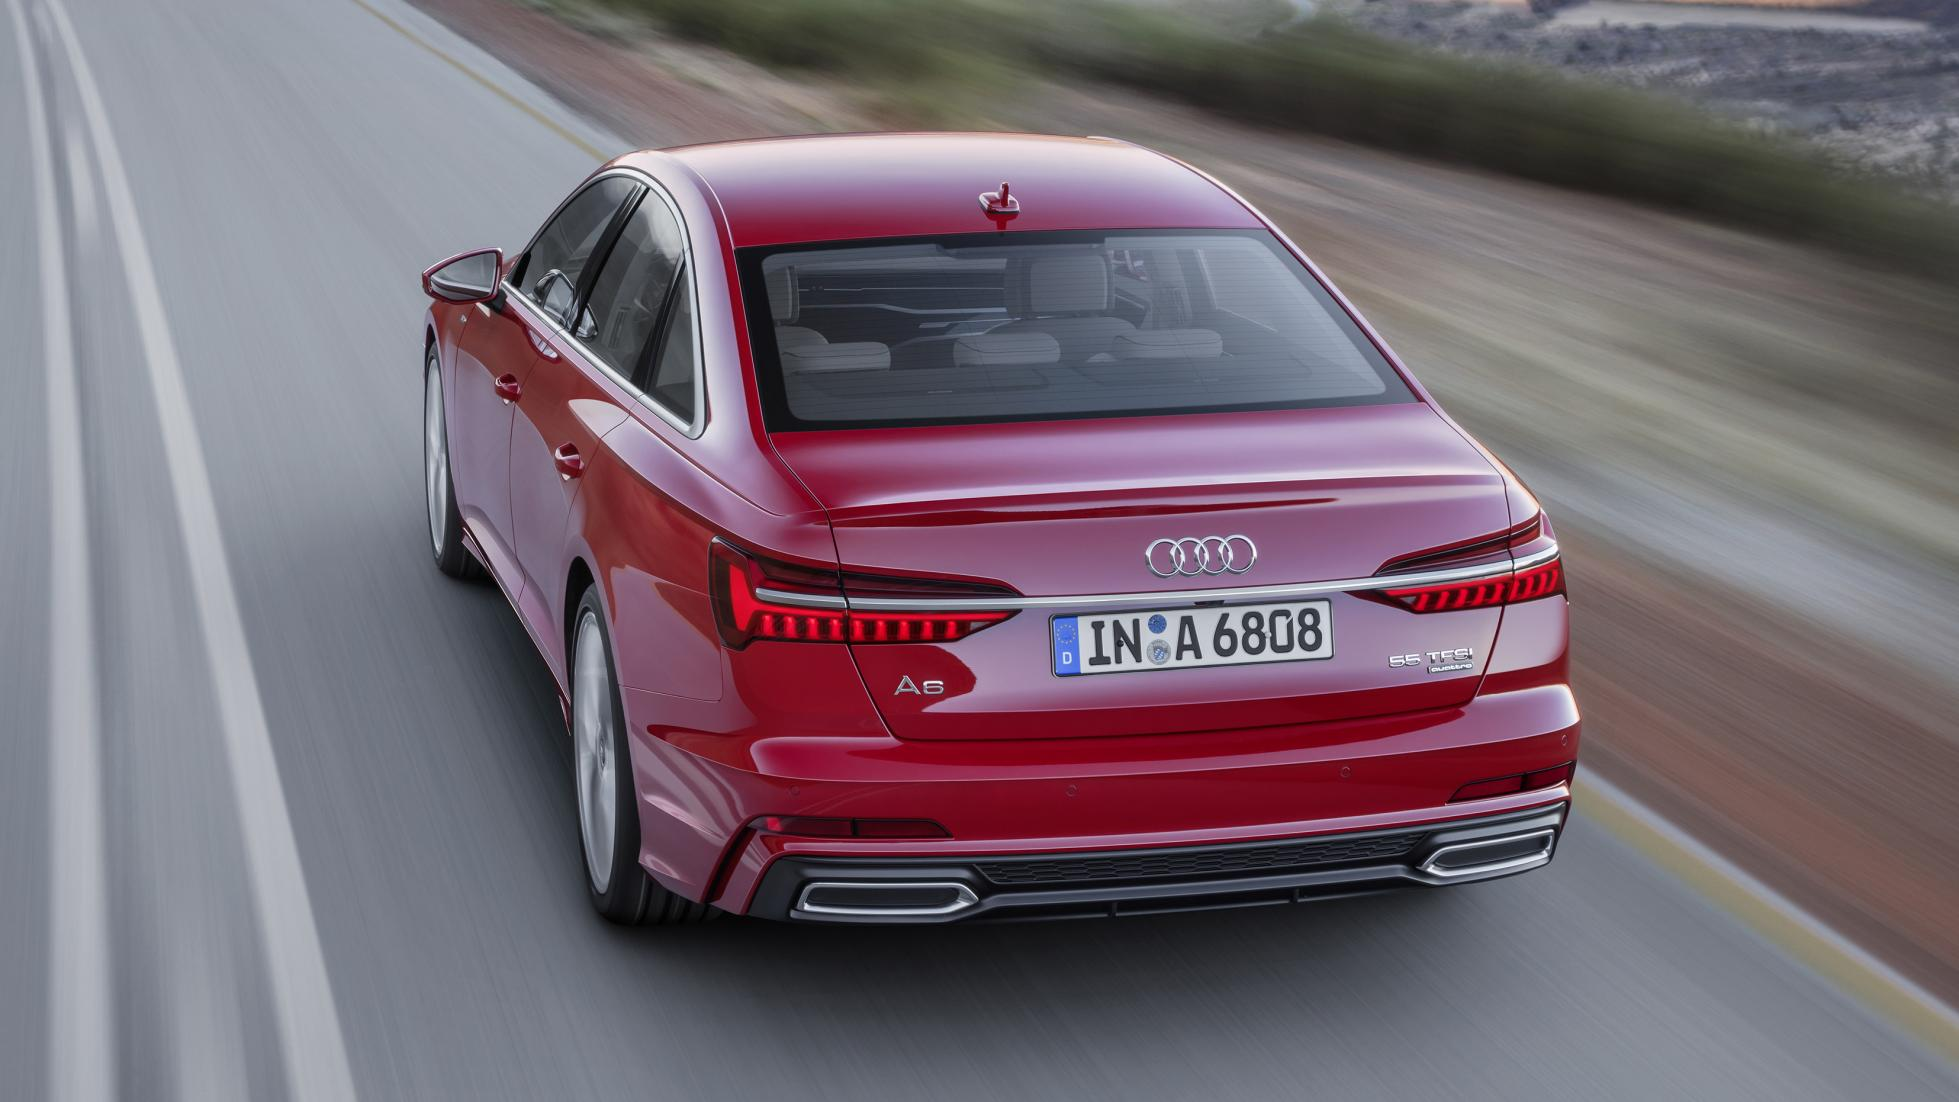 Audi A6 Saloon Wallpaper HD For Your Desktop